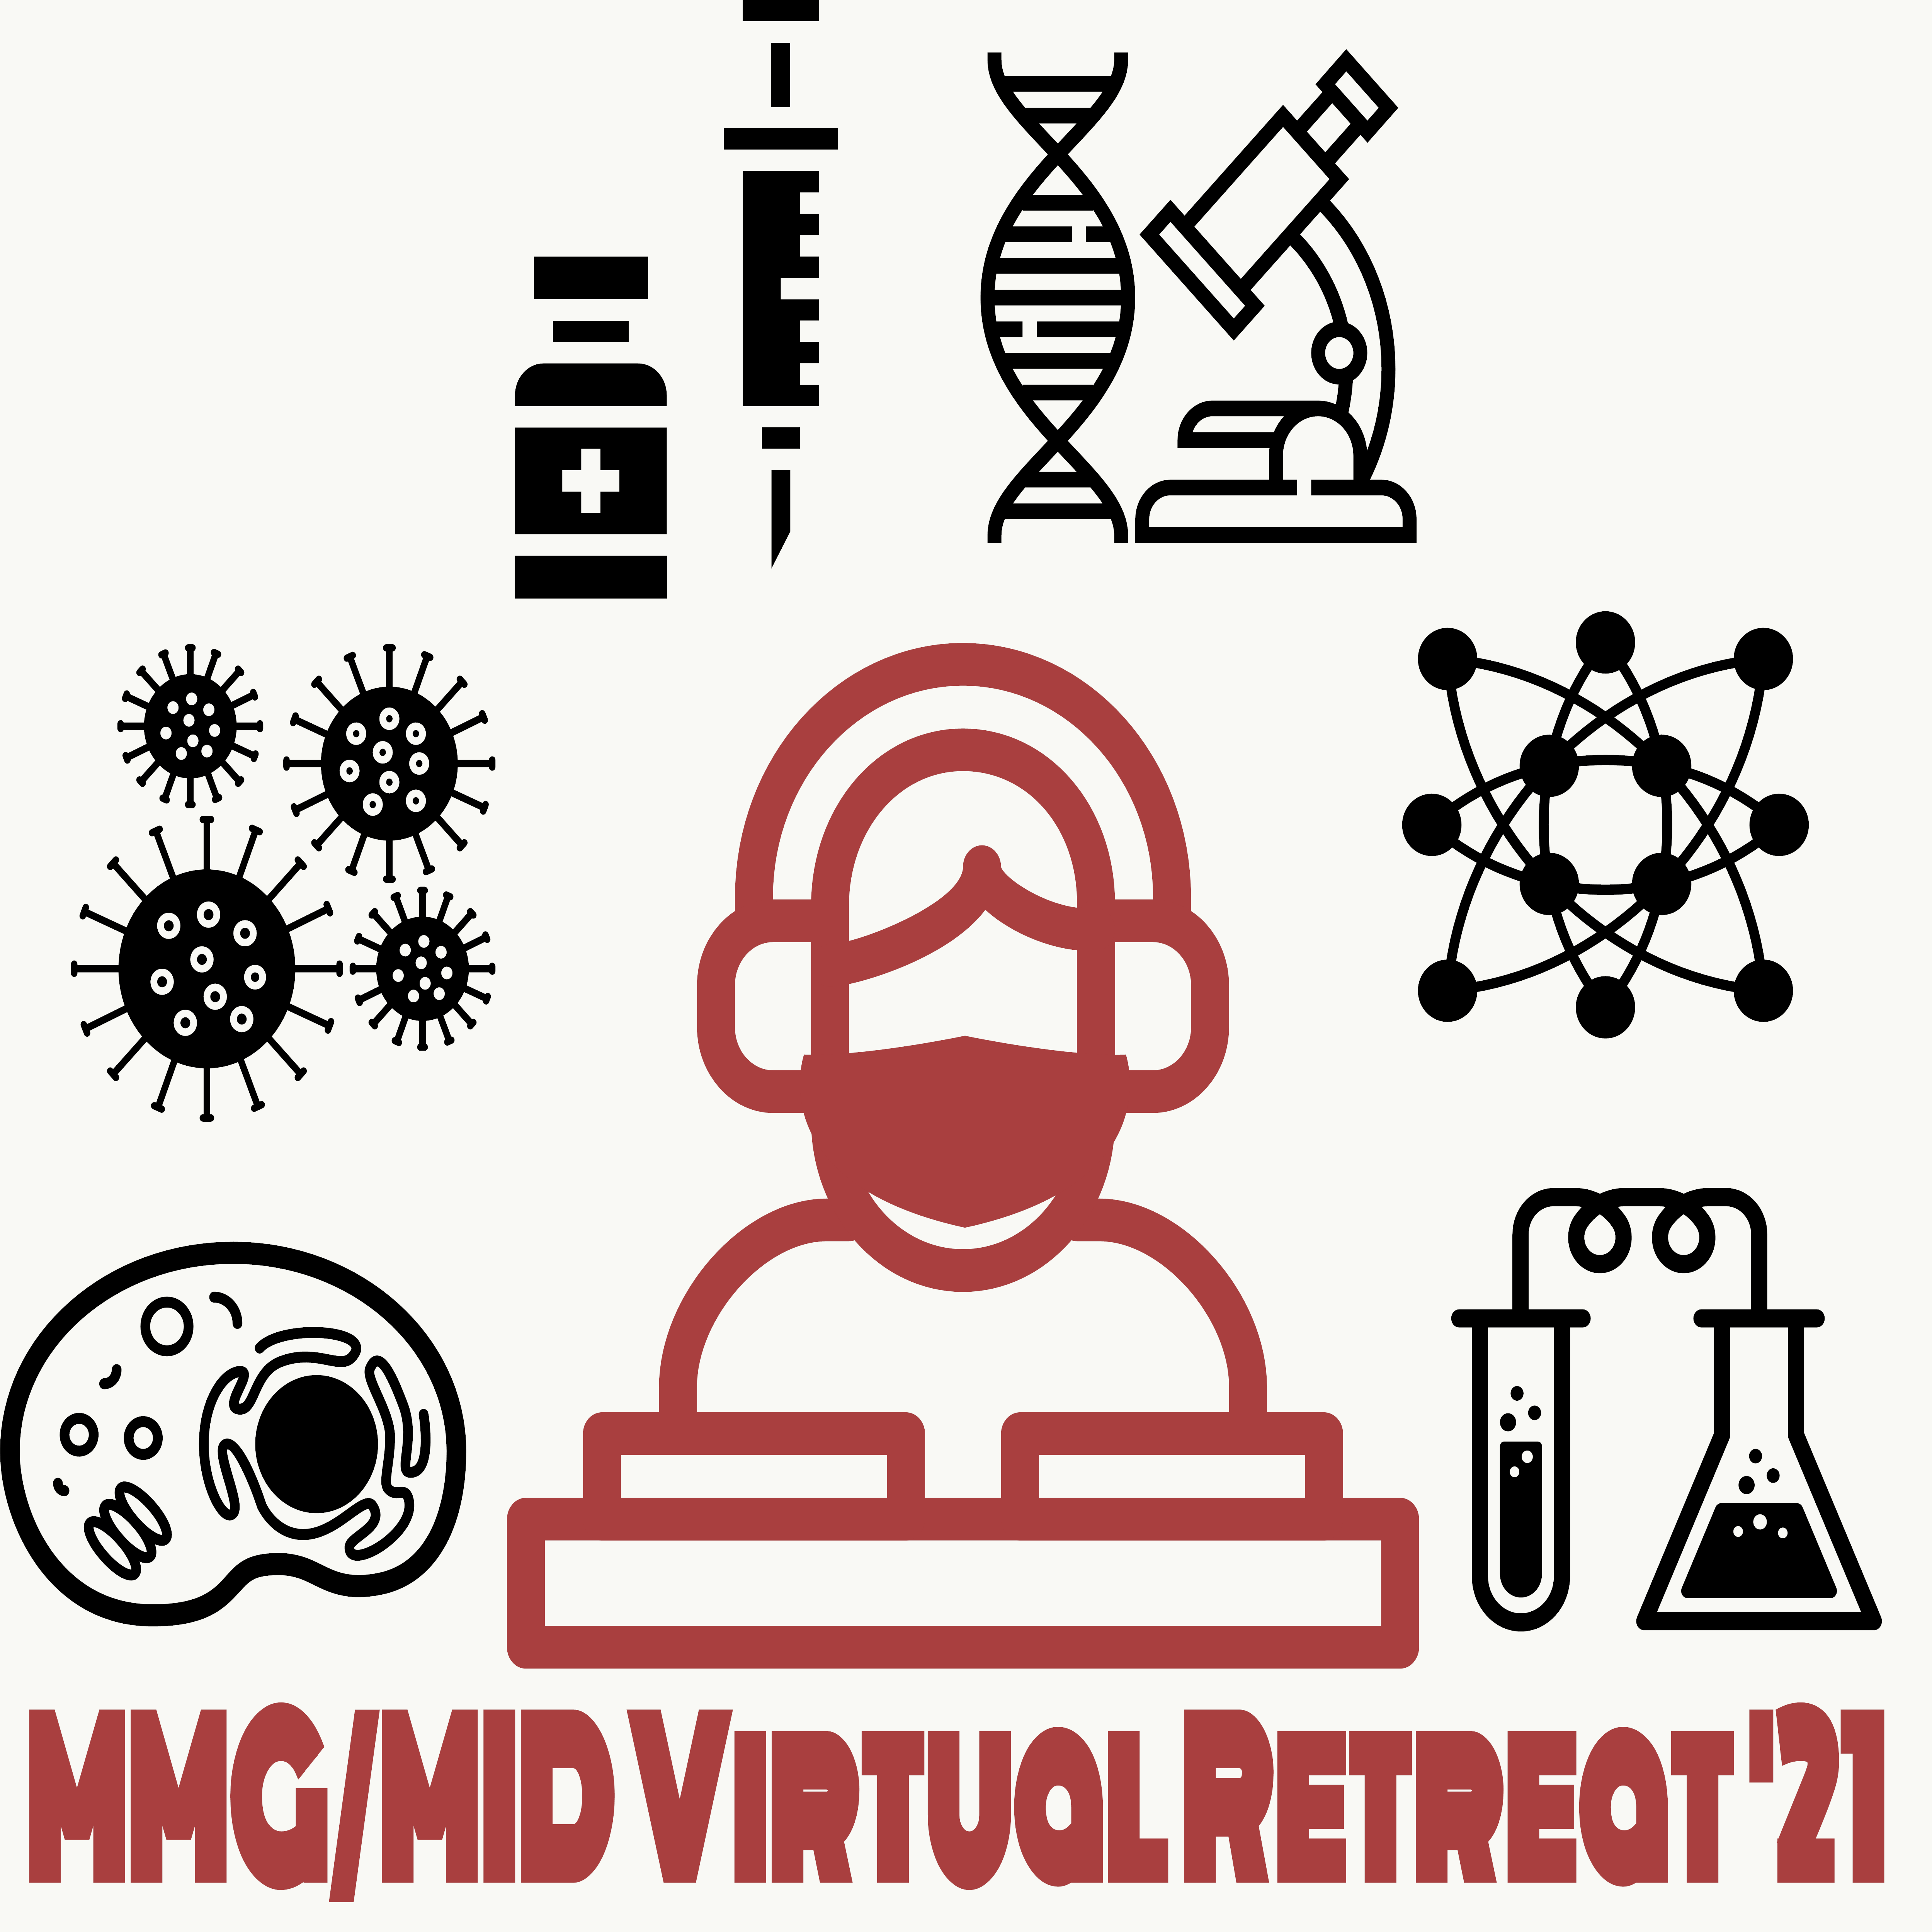 image from Students, Postdocs Win Poster, Presentation Awards at MMG/MID Retreat 2021